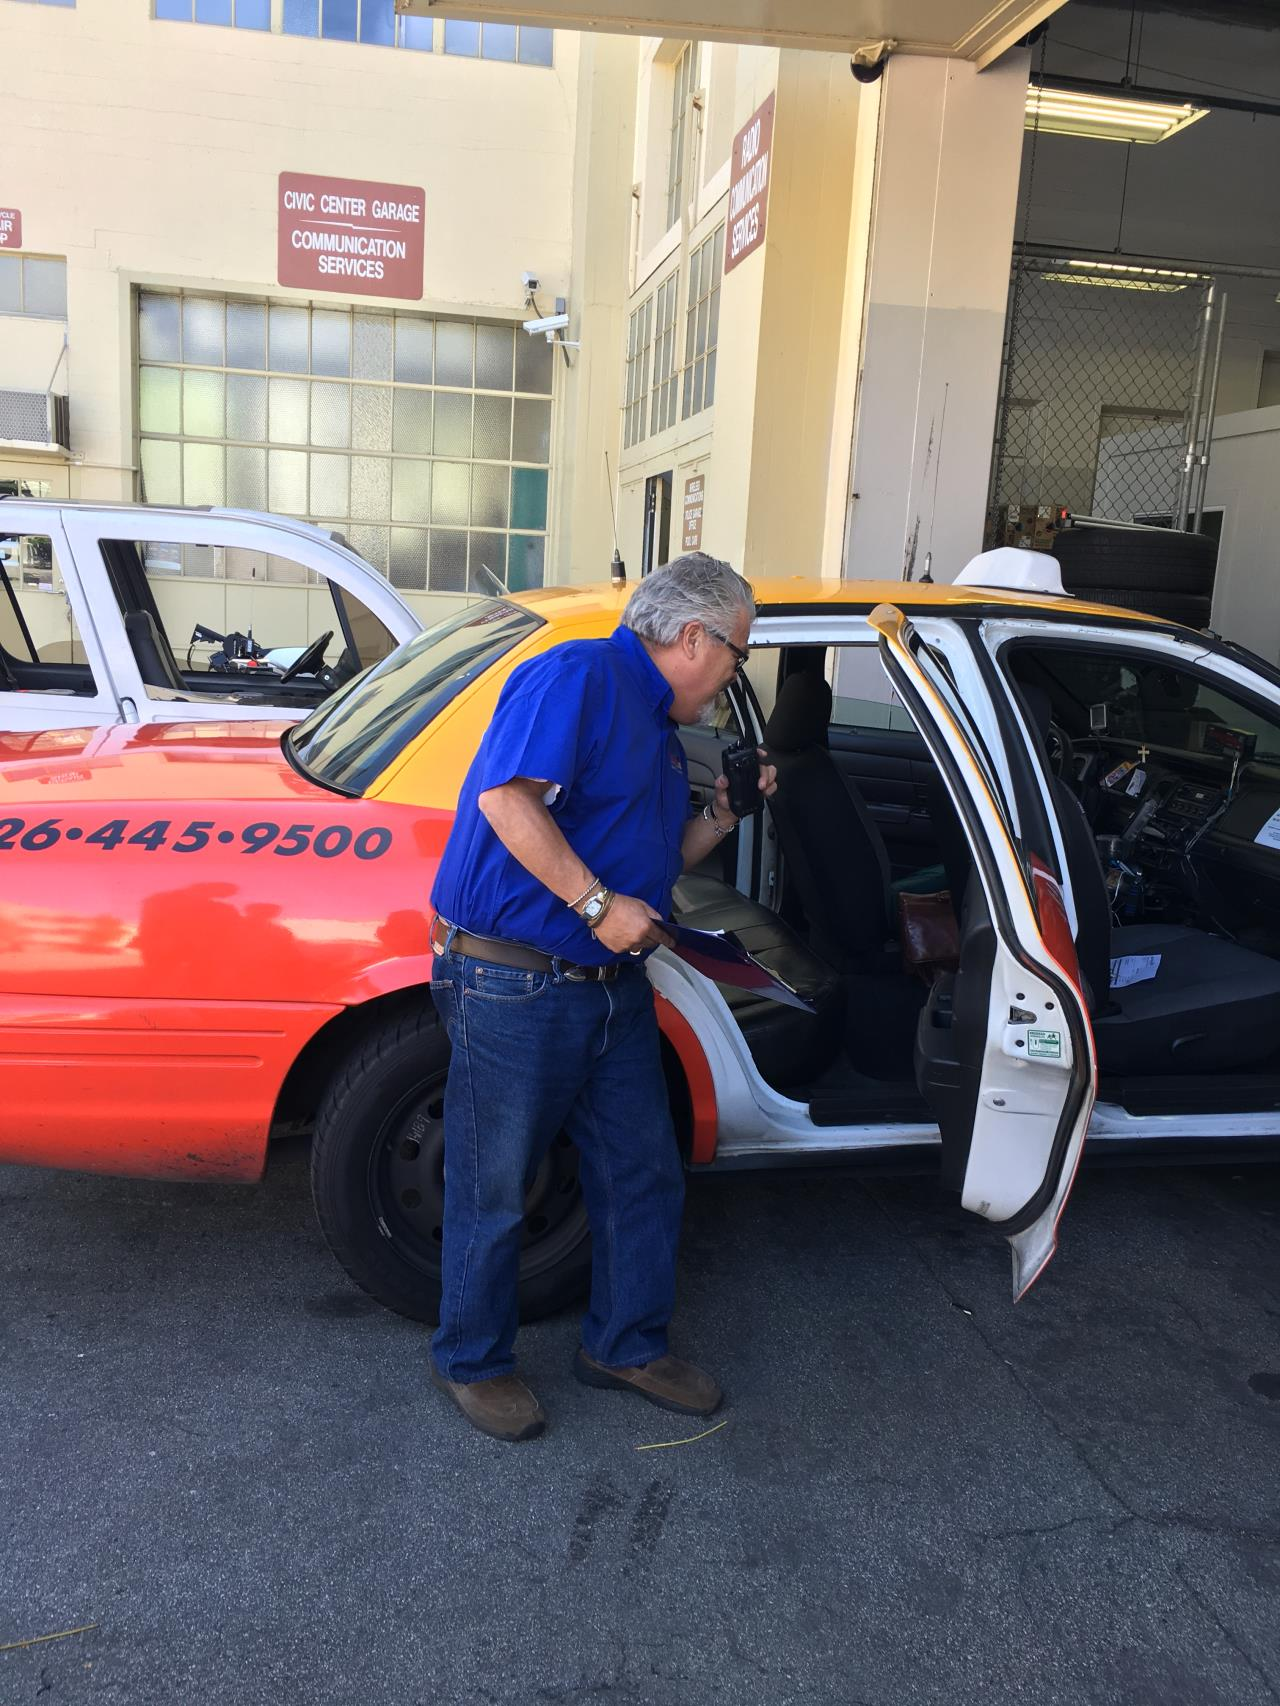 Taxi Cab Inspections (4)